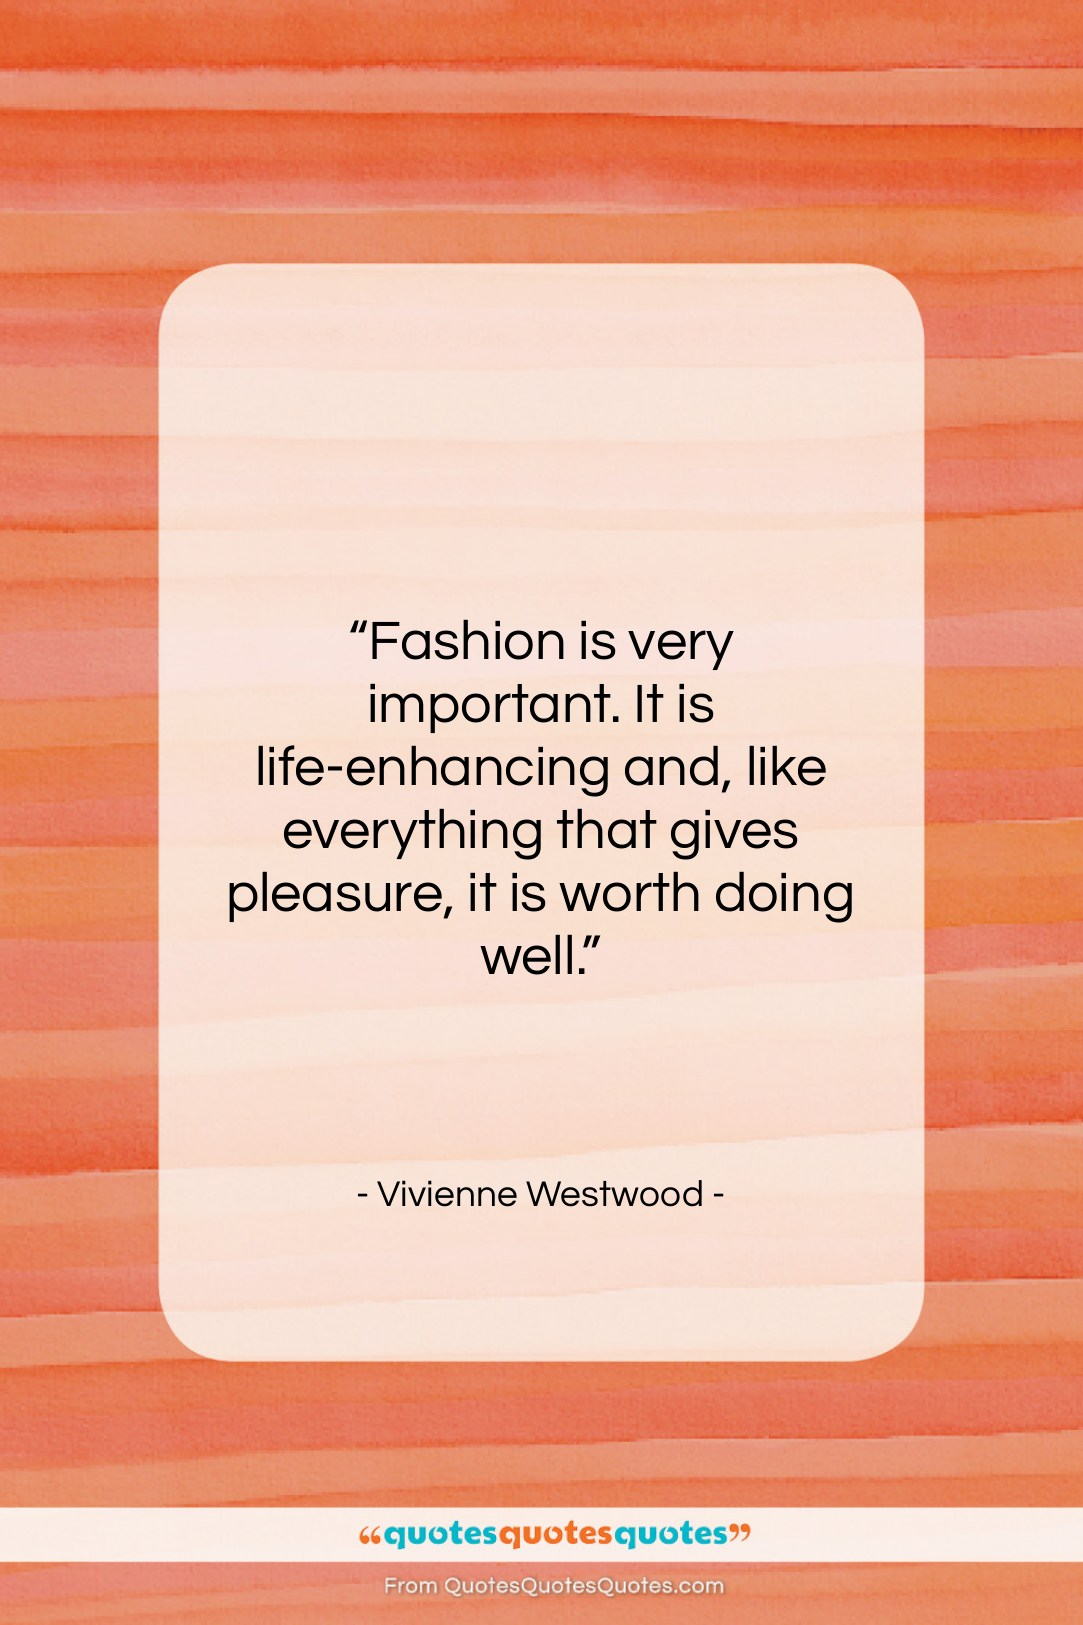 """Vivienne Westwood quote: """"Fashion is very important. It is life-enhancing…""""- at QuotesQuotesQuotes.com"""